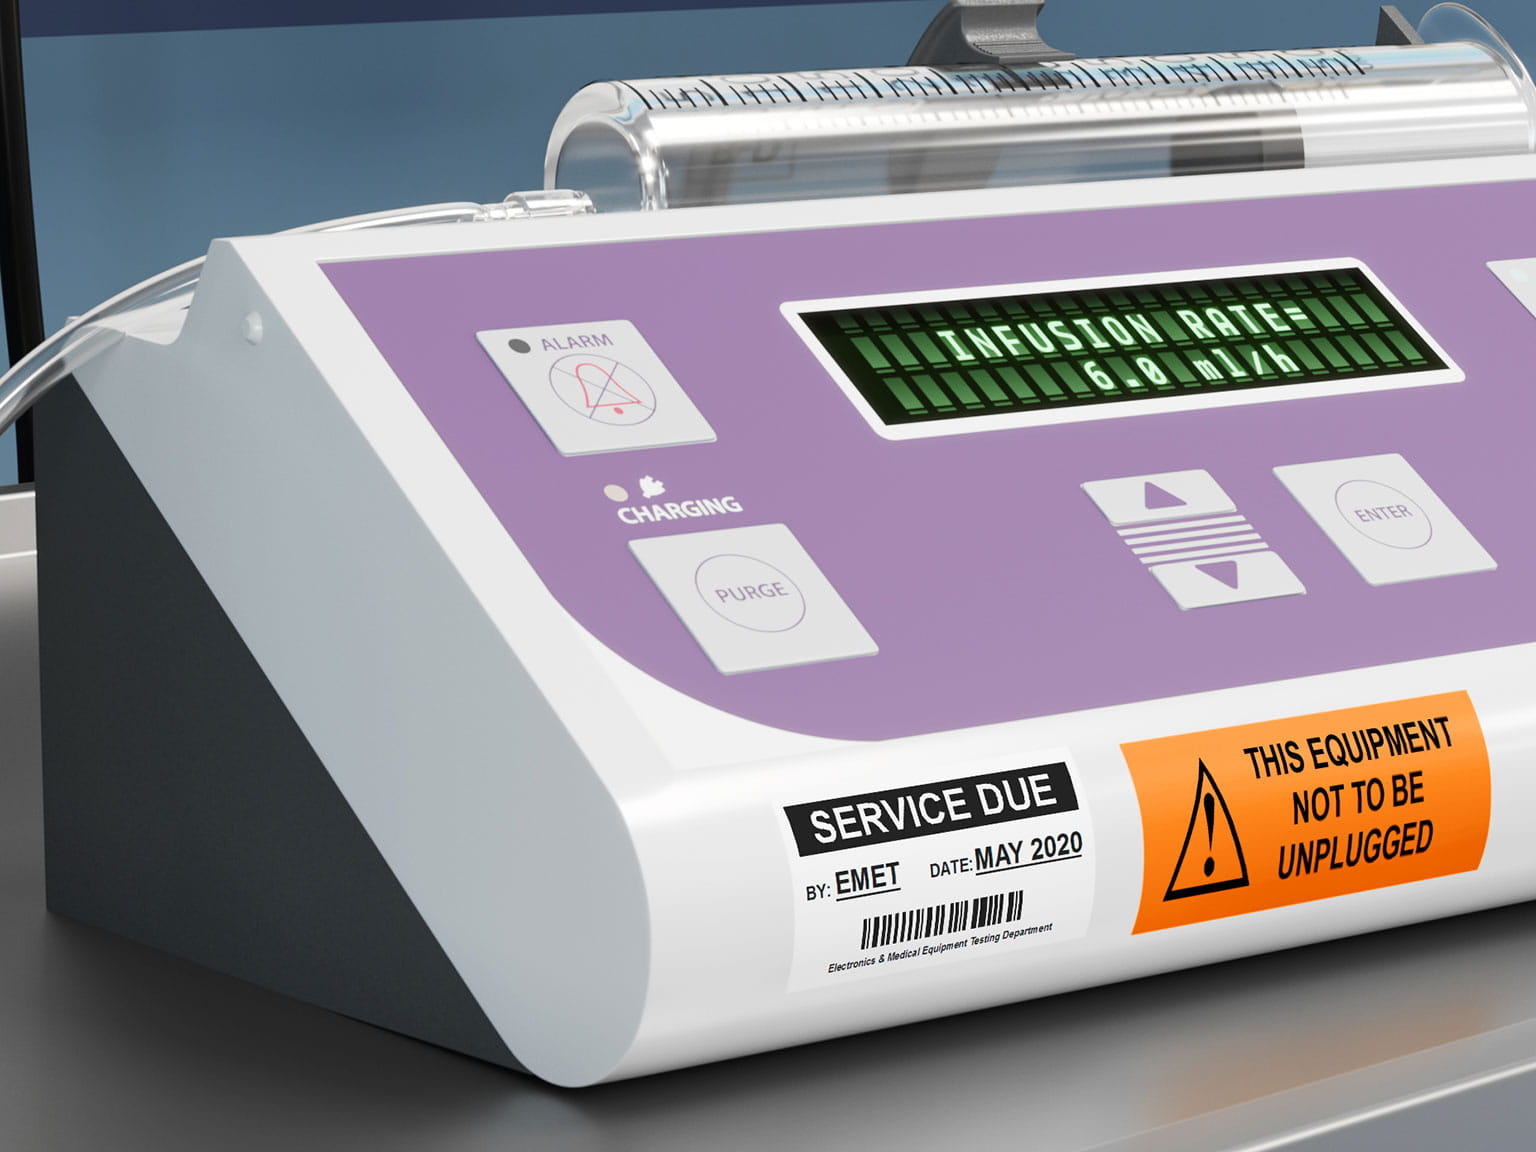 Service information on Brother P-touch TZe laminated label attached to syringe driver in a hospital